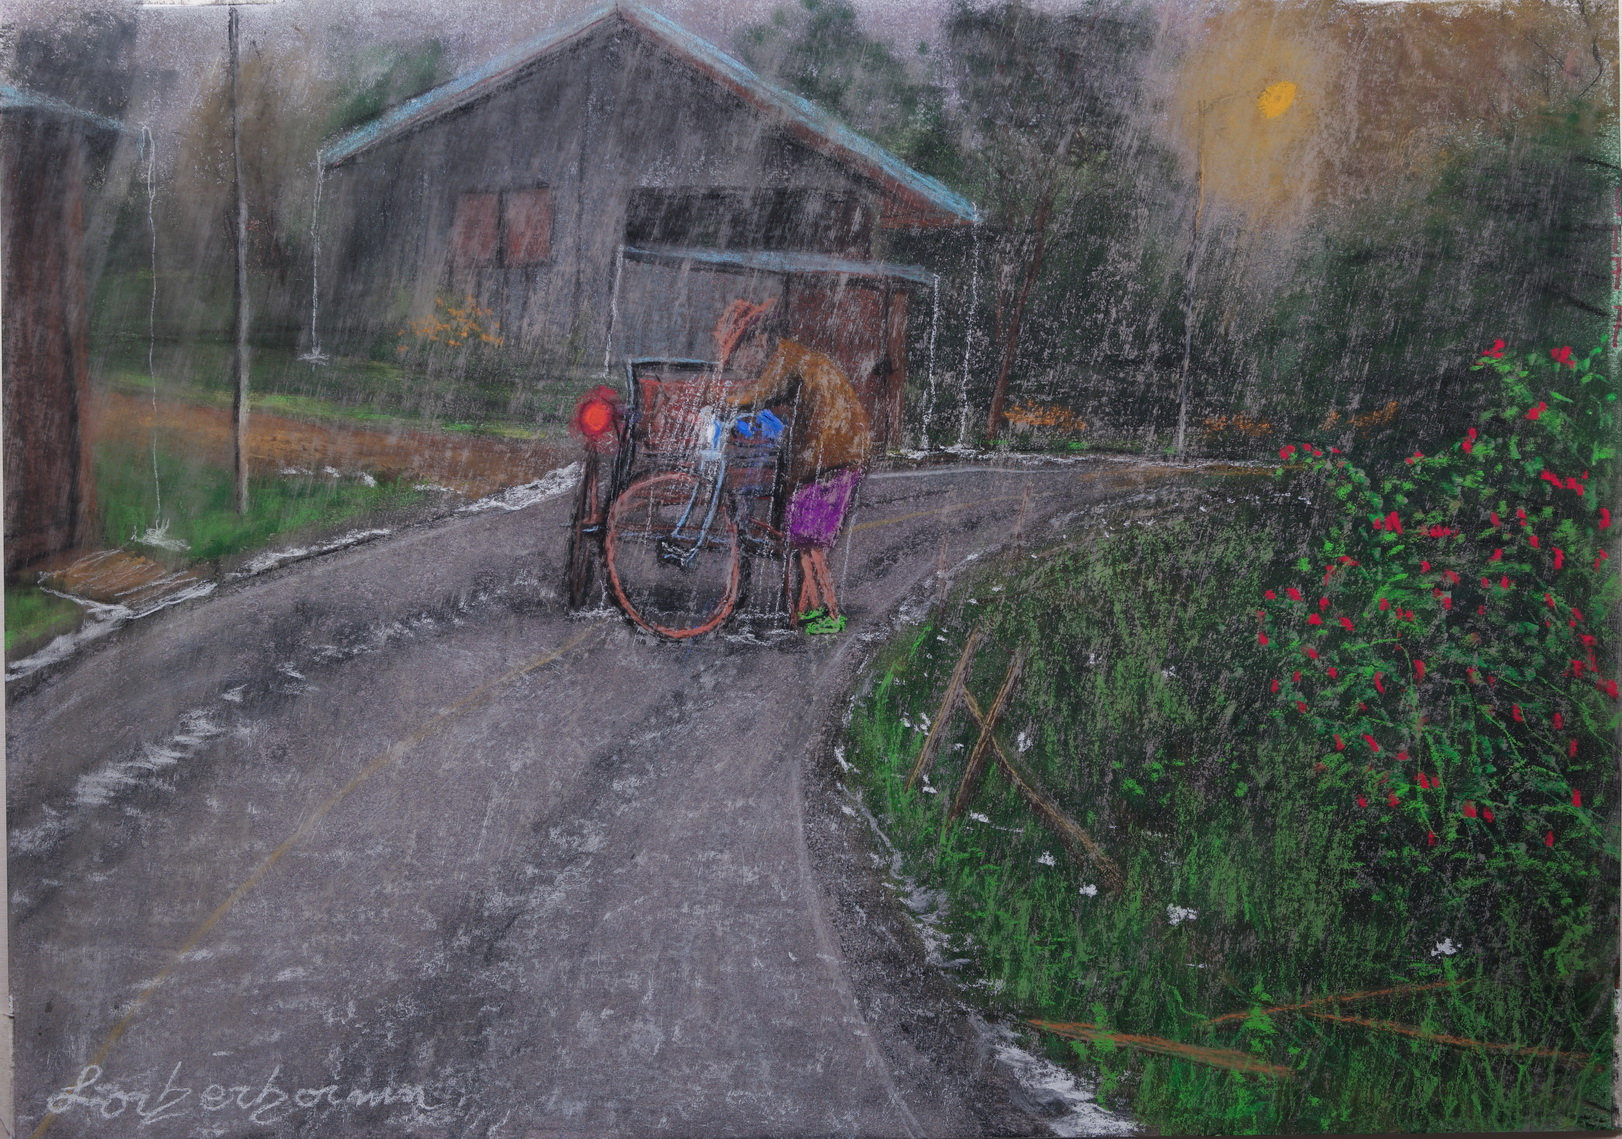 Tricyclo driver stuck in rain, Chiang Mai, Thailand. Lorberboim Soft Pastel Painting.